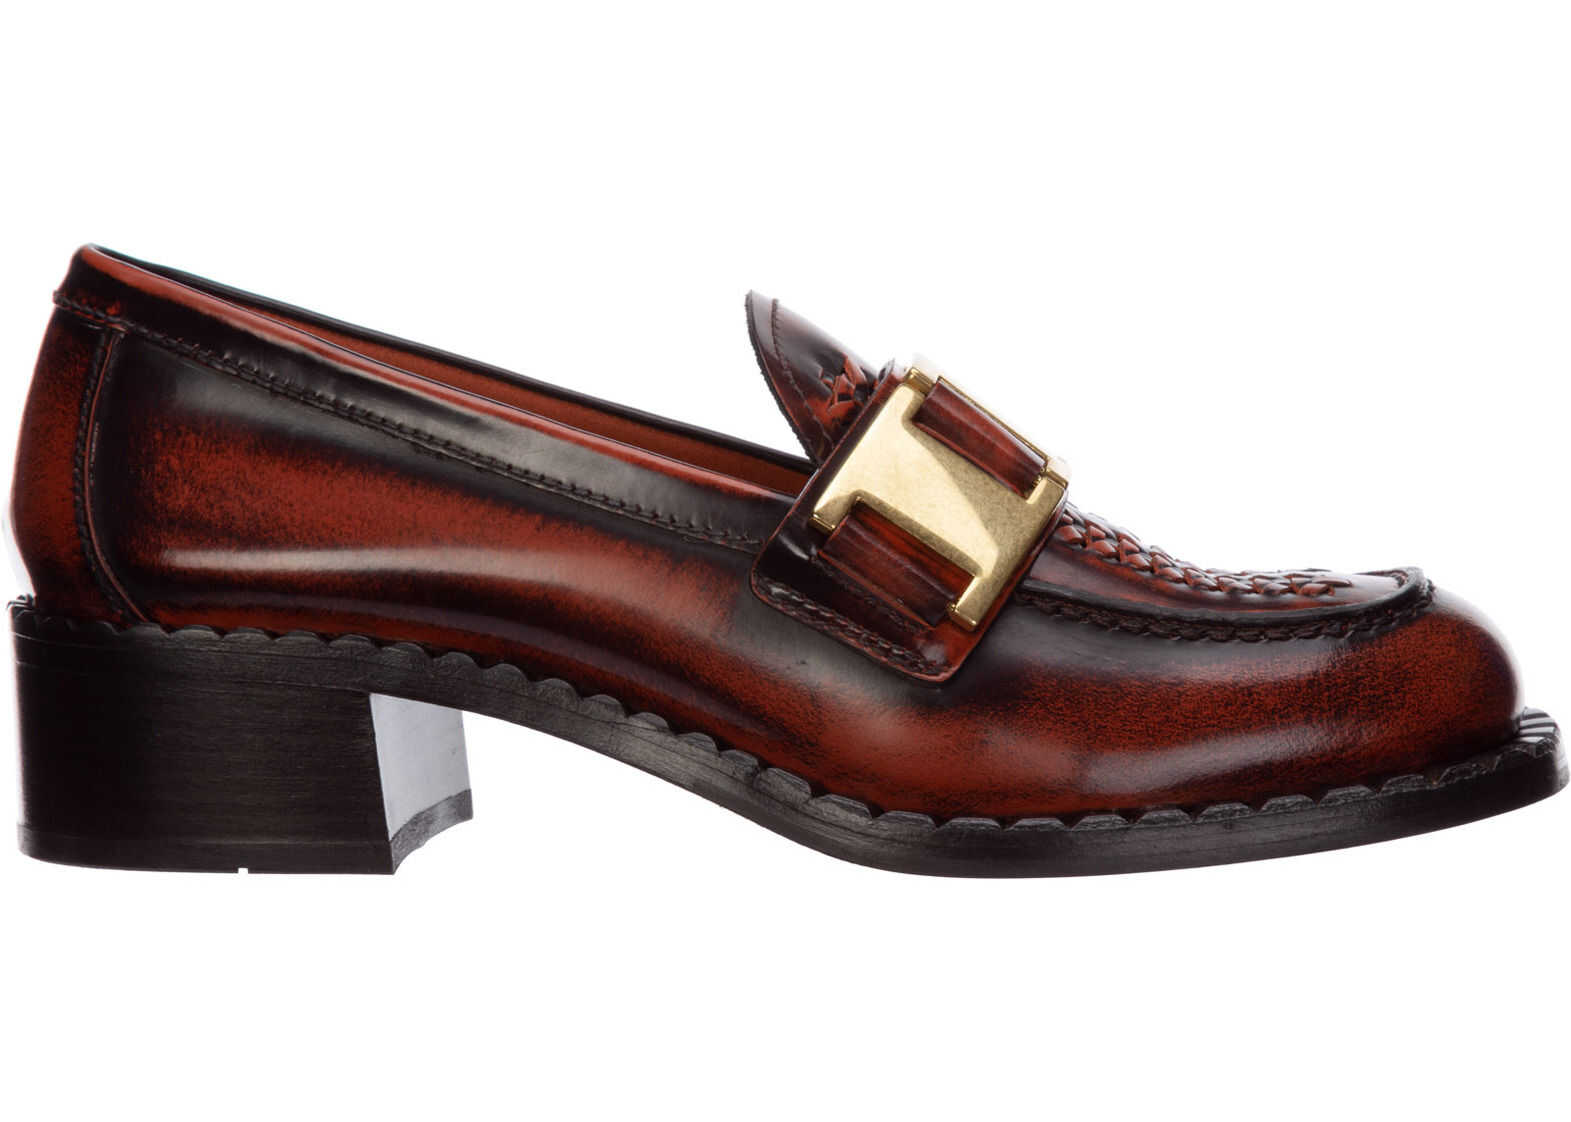 Prada Loafers Moccasins Brown